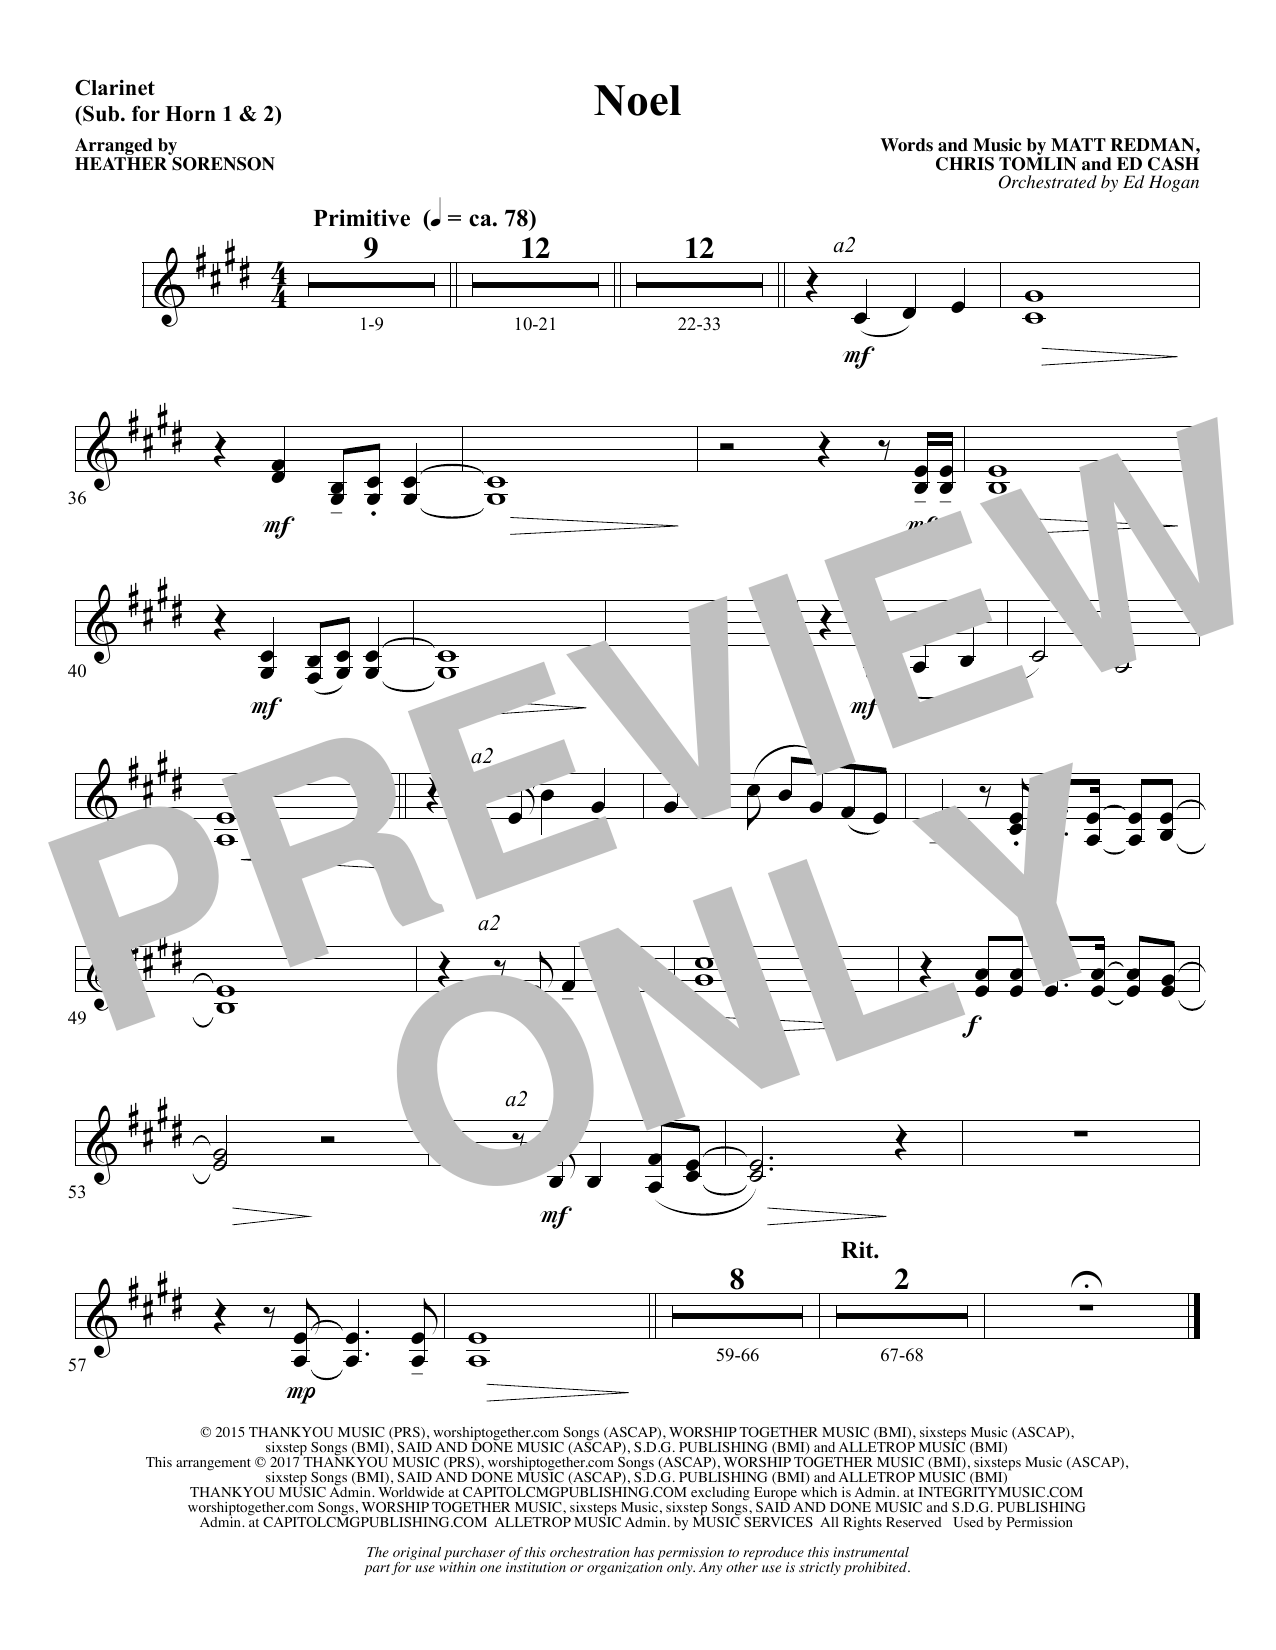 Noel (feat. Lauren Daigle) (arr. Heather Sorenson) - Clarinet (sub. Horn 1-2) (Choir Instrumental Pak)